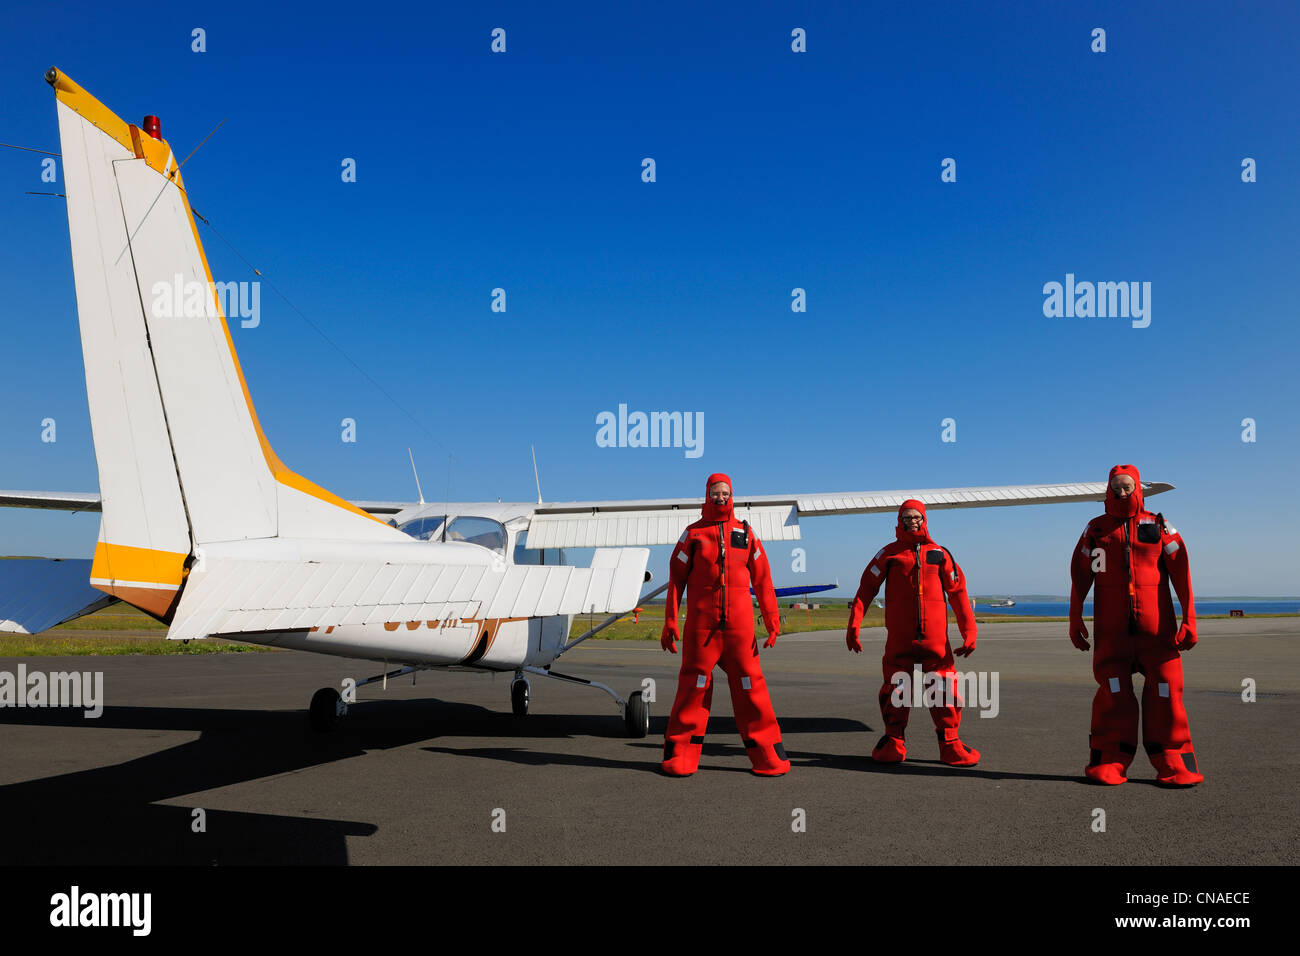 United Kingdom, Scotland, Orkney Islands, Mainland, Kirkwall airport - Stock Image